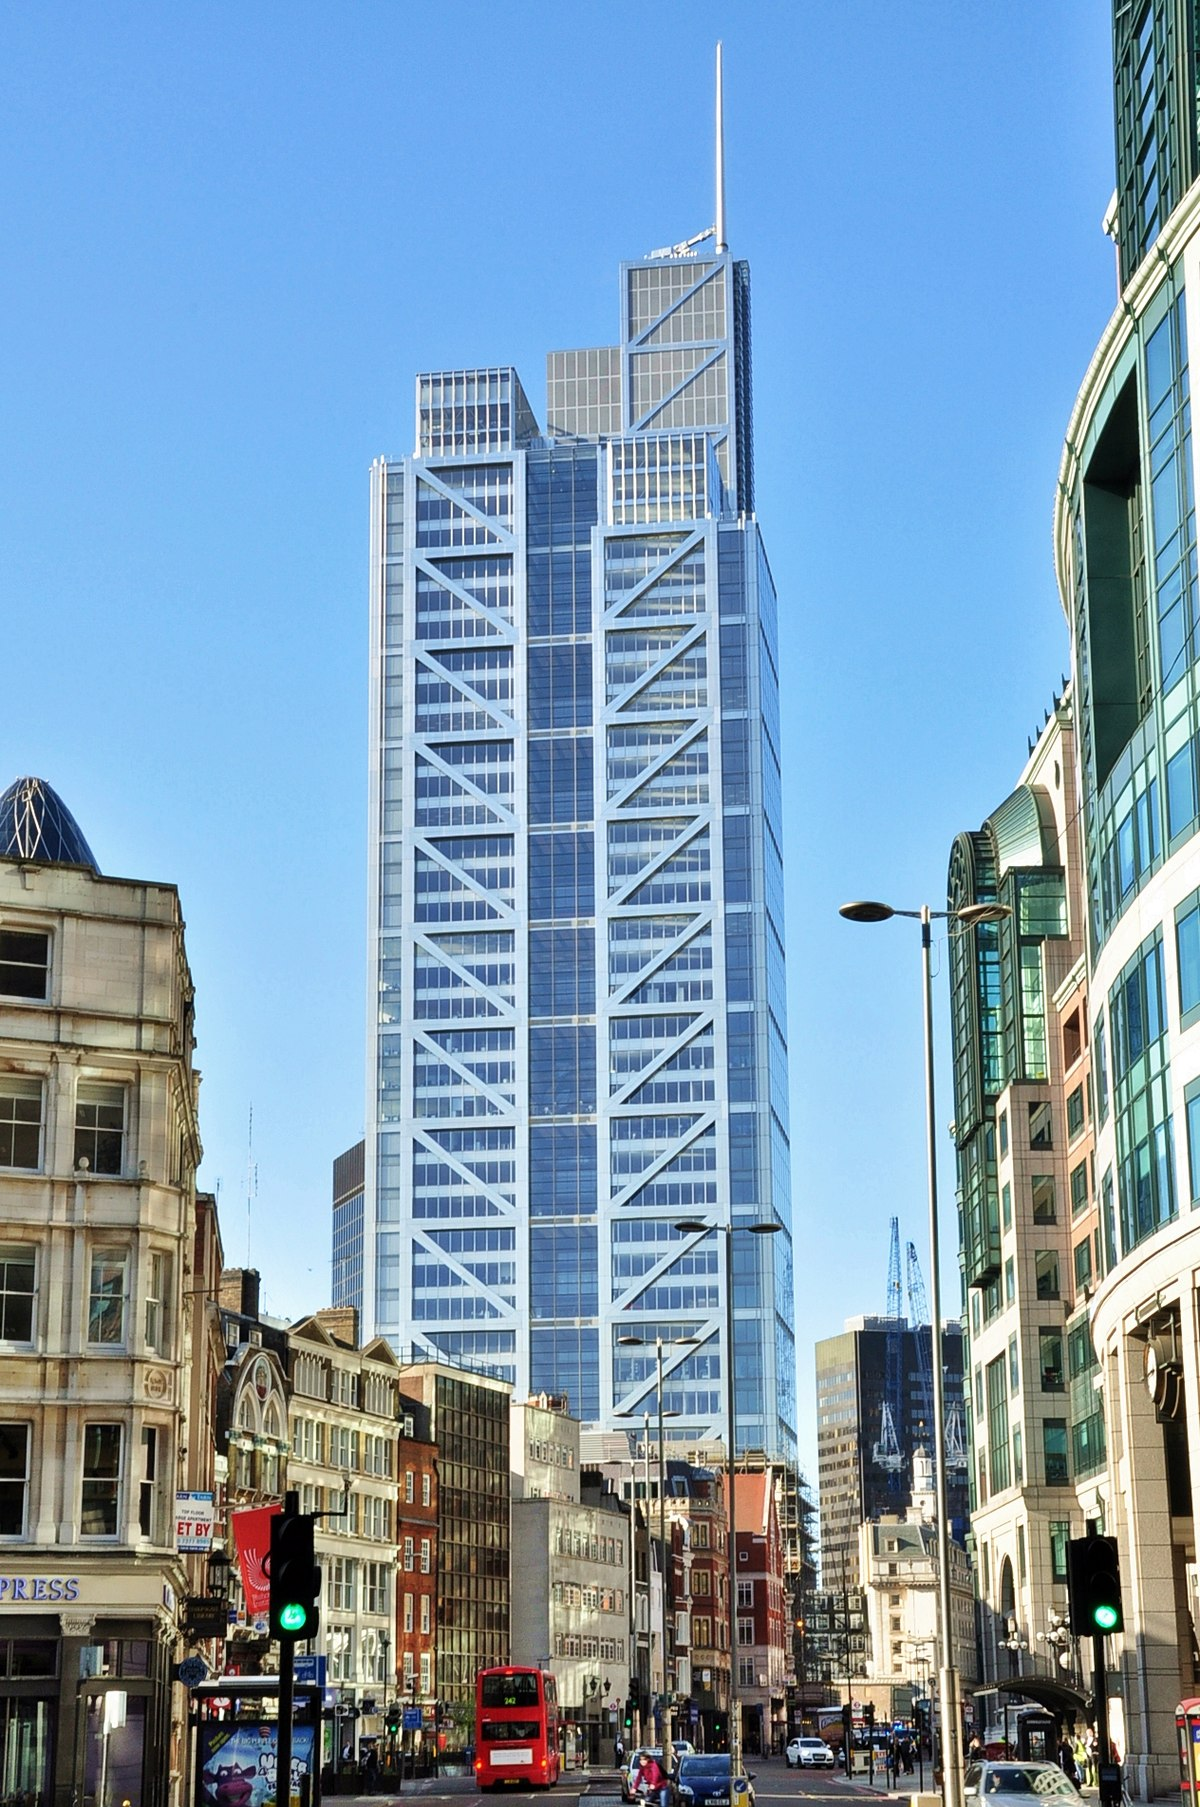 Great London Buildings – Heron Tower